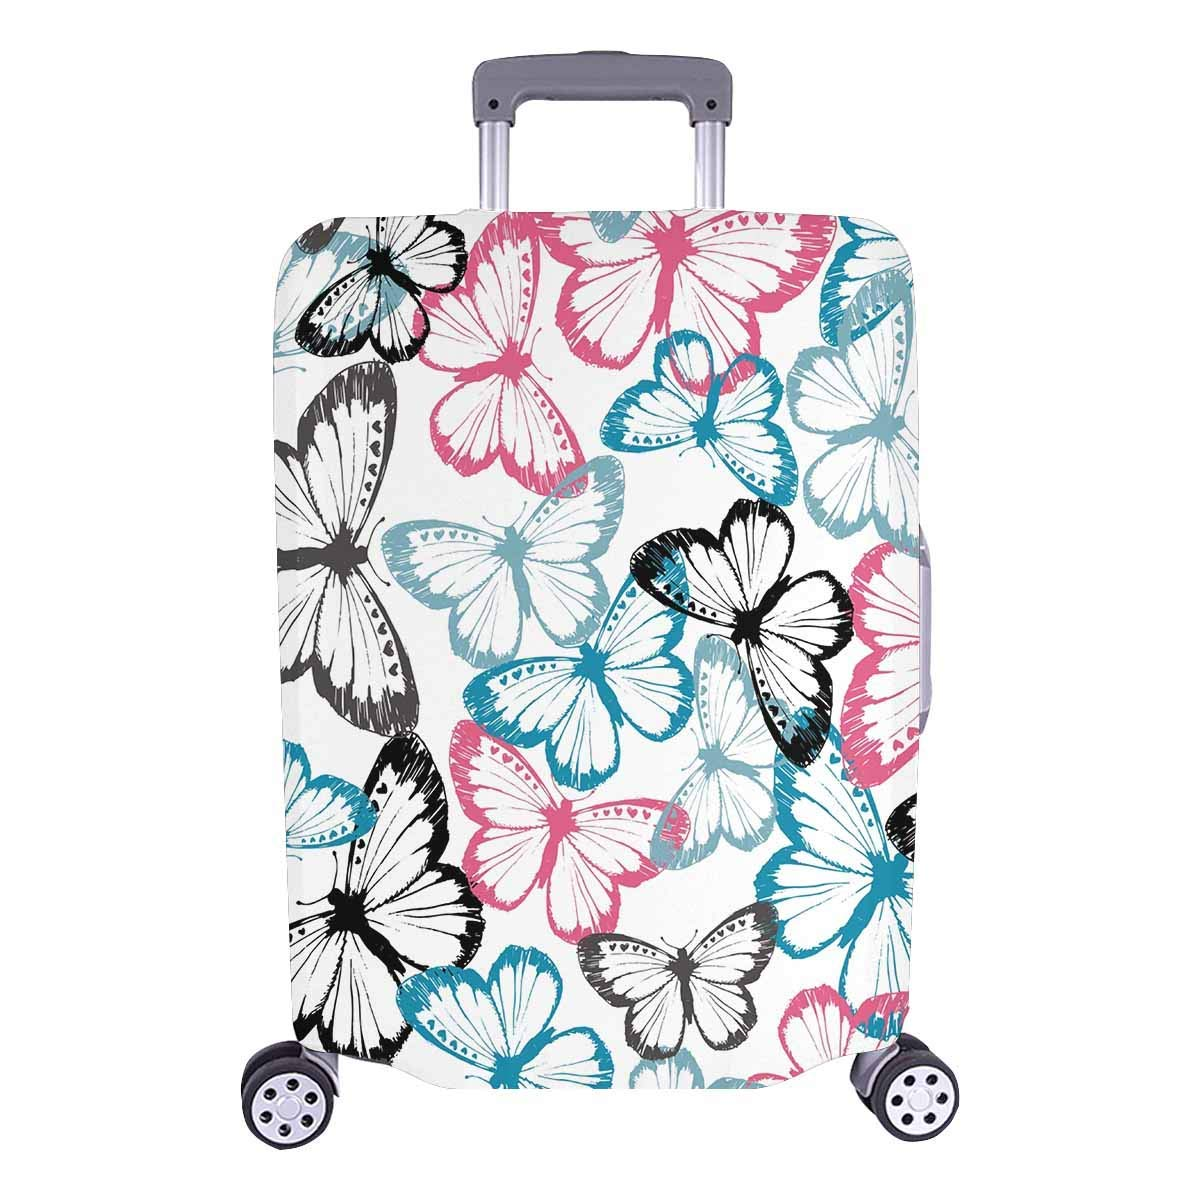 9f39a424ba25 Get Quotations · InterestPrint Suitcase Covers Travel Luggage Protectorss  Butterfly Camouflage Repeat Fit 18-28 Inch Luggage